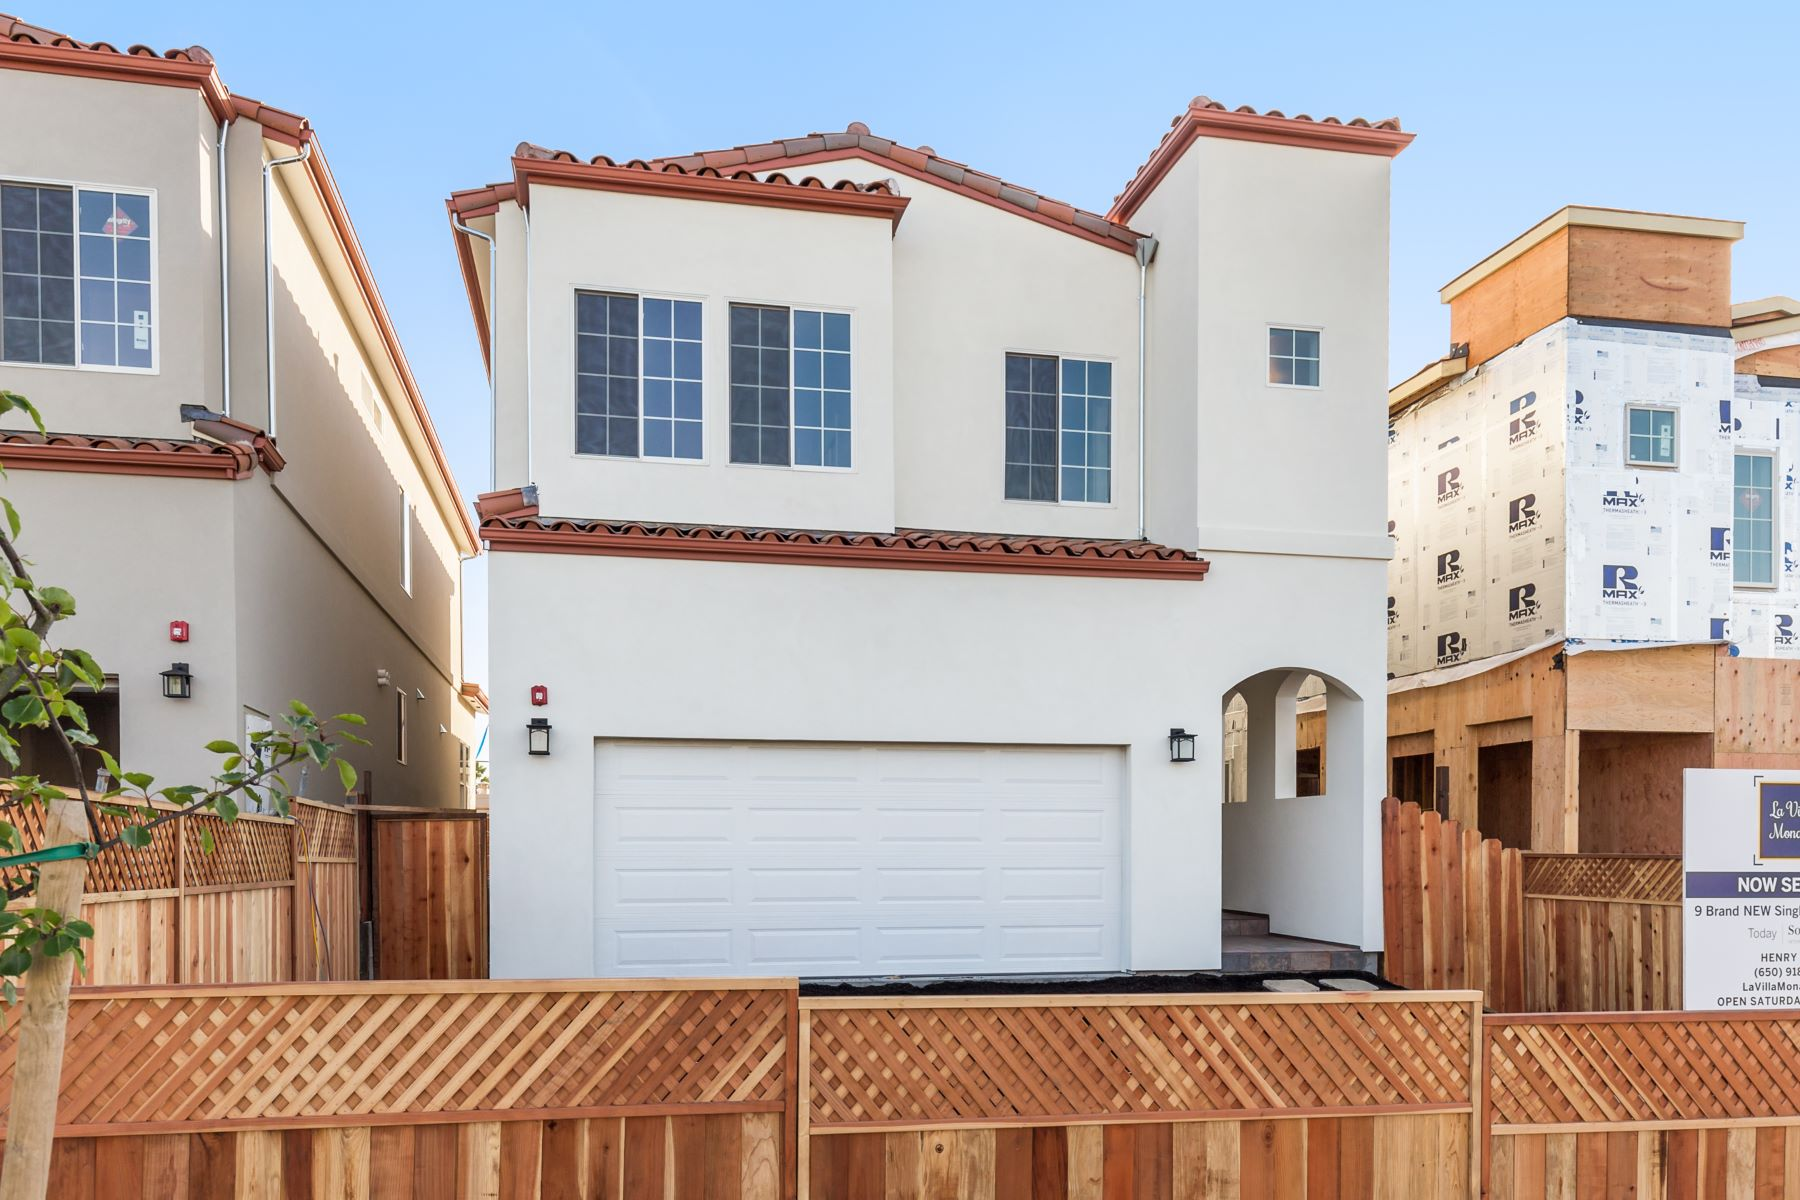 Single Family Home for Sale at Brand New Contemporary Luxurious Smart Home 448 B Street Colma, California 94014 United States